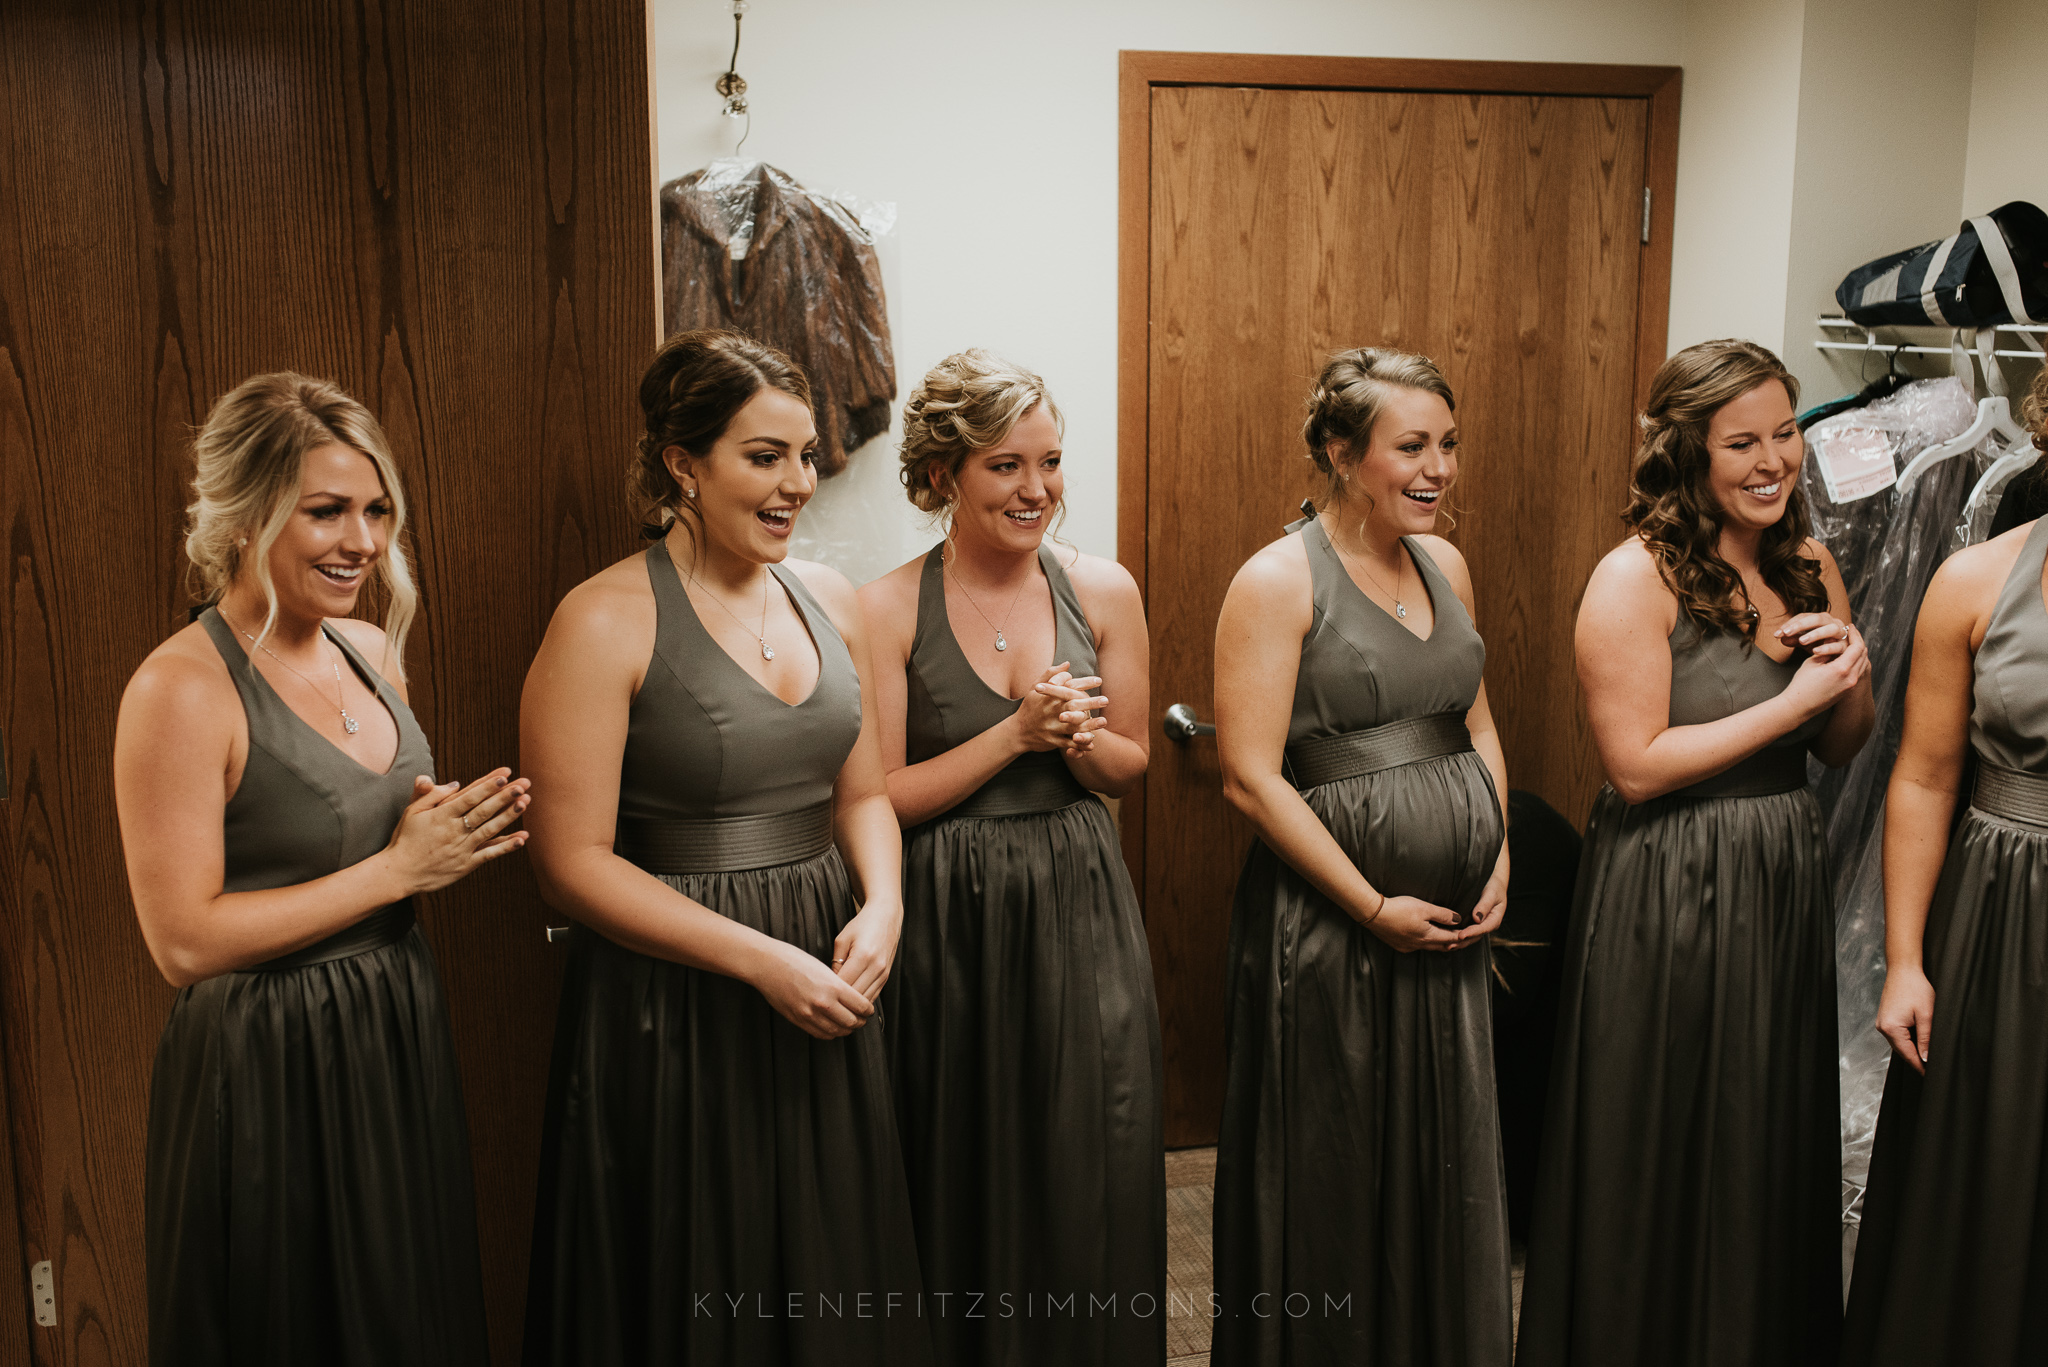 giannonatti-minnesota-winter-wedding-12.jpg